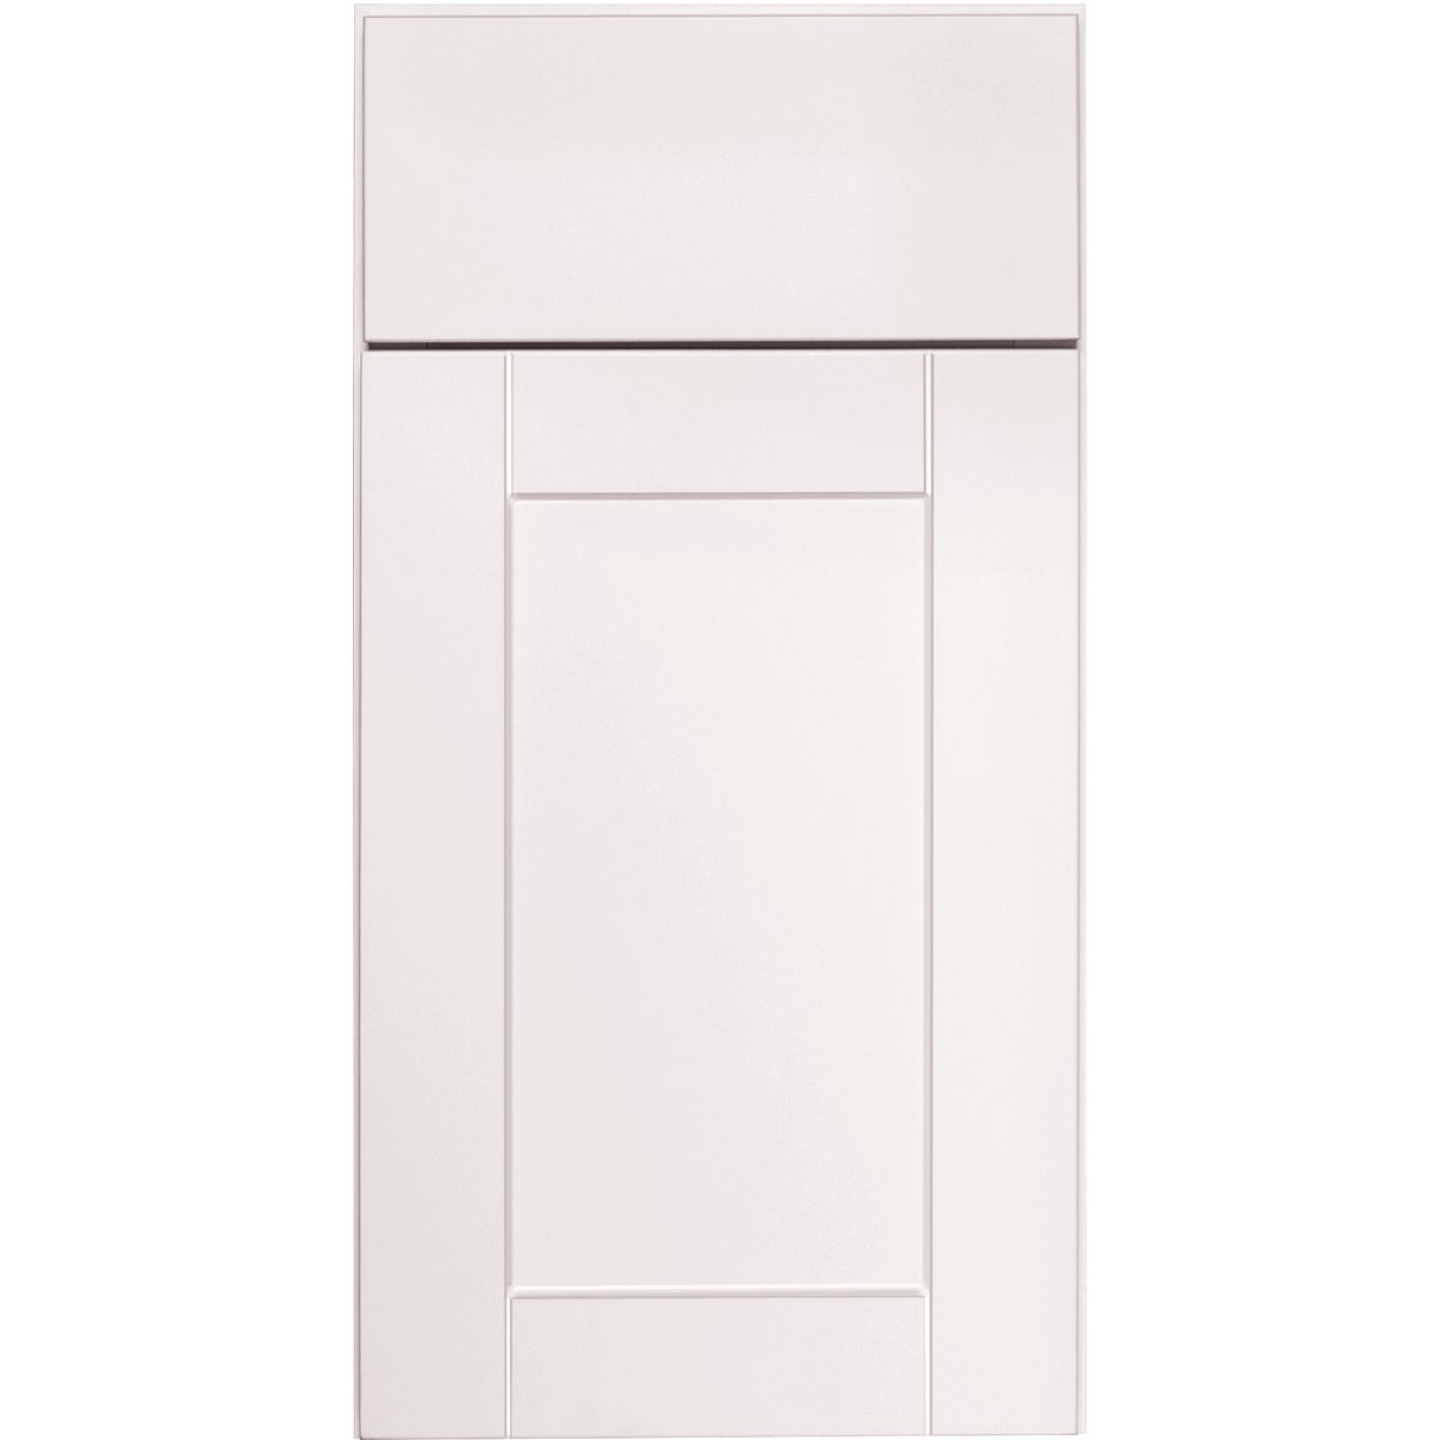 Continental Cabinets Andover Shaker 30 In. W x 30 In. H x 12 In. D White Thermofoil Wall Kitchen Cabinet Image 4